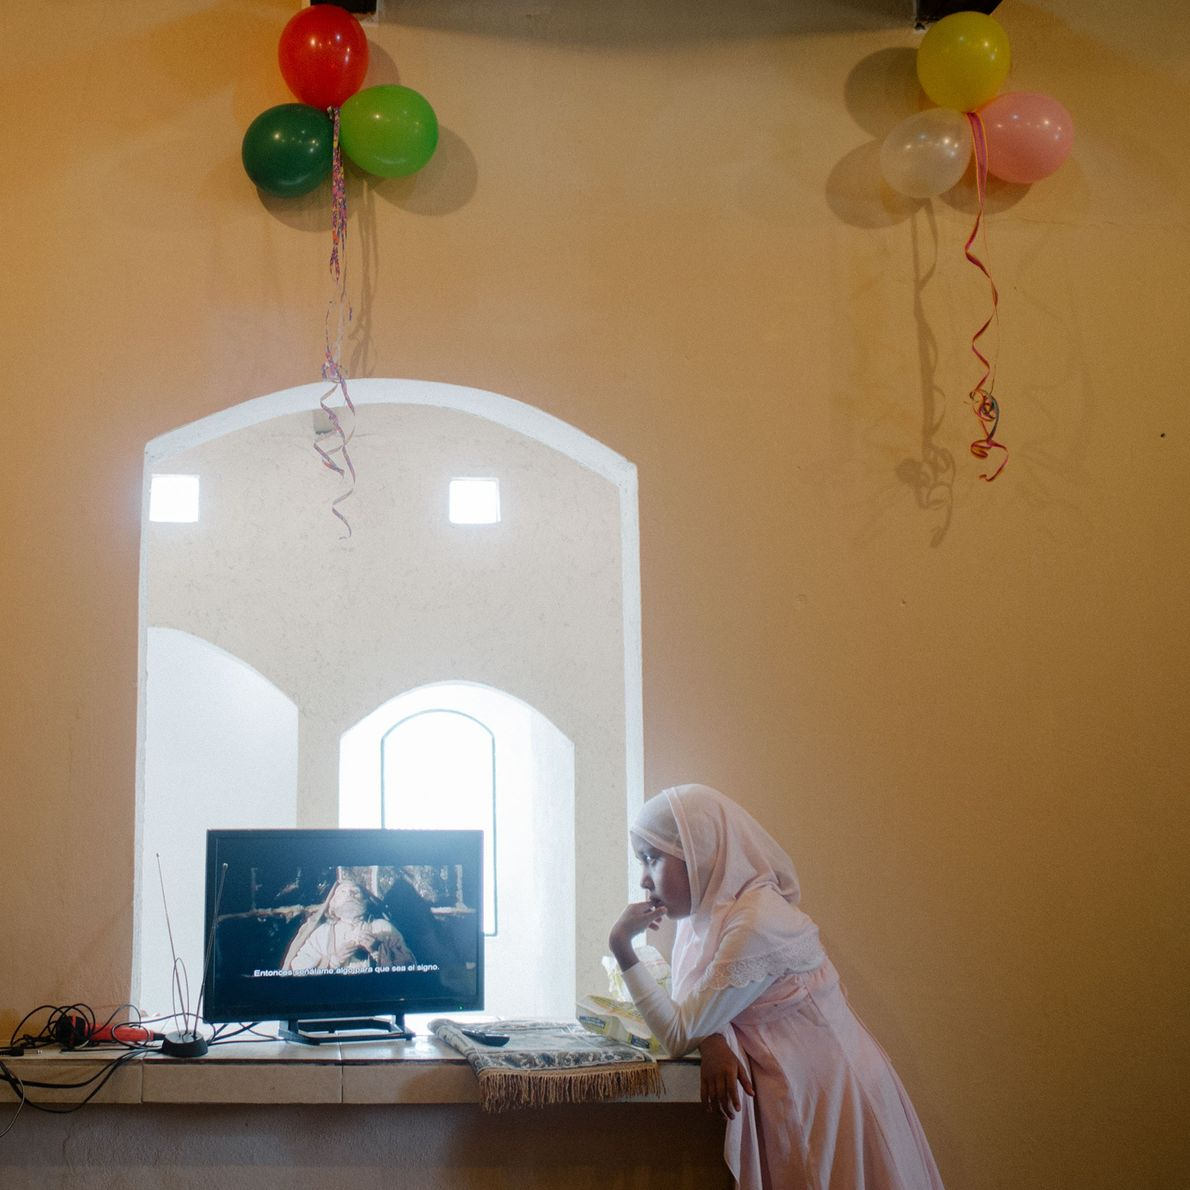 Eleven-year-old Ramka watches a movie about the Virgin Mary during the holy feast of Eid al-Adha.